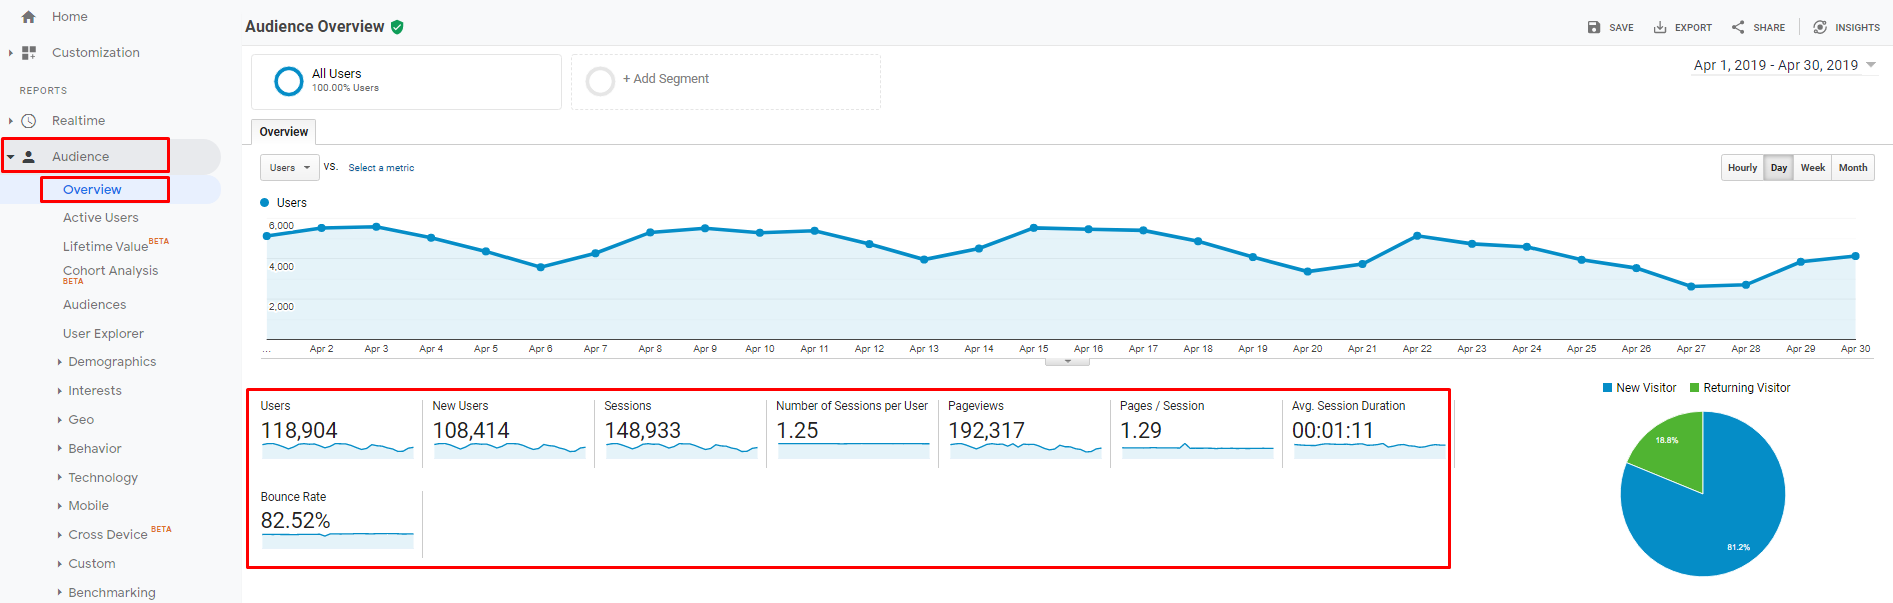 Audience overview in Google Analytics